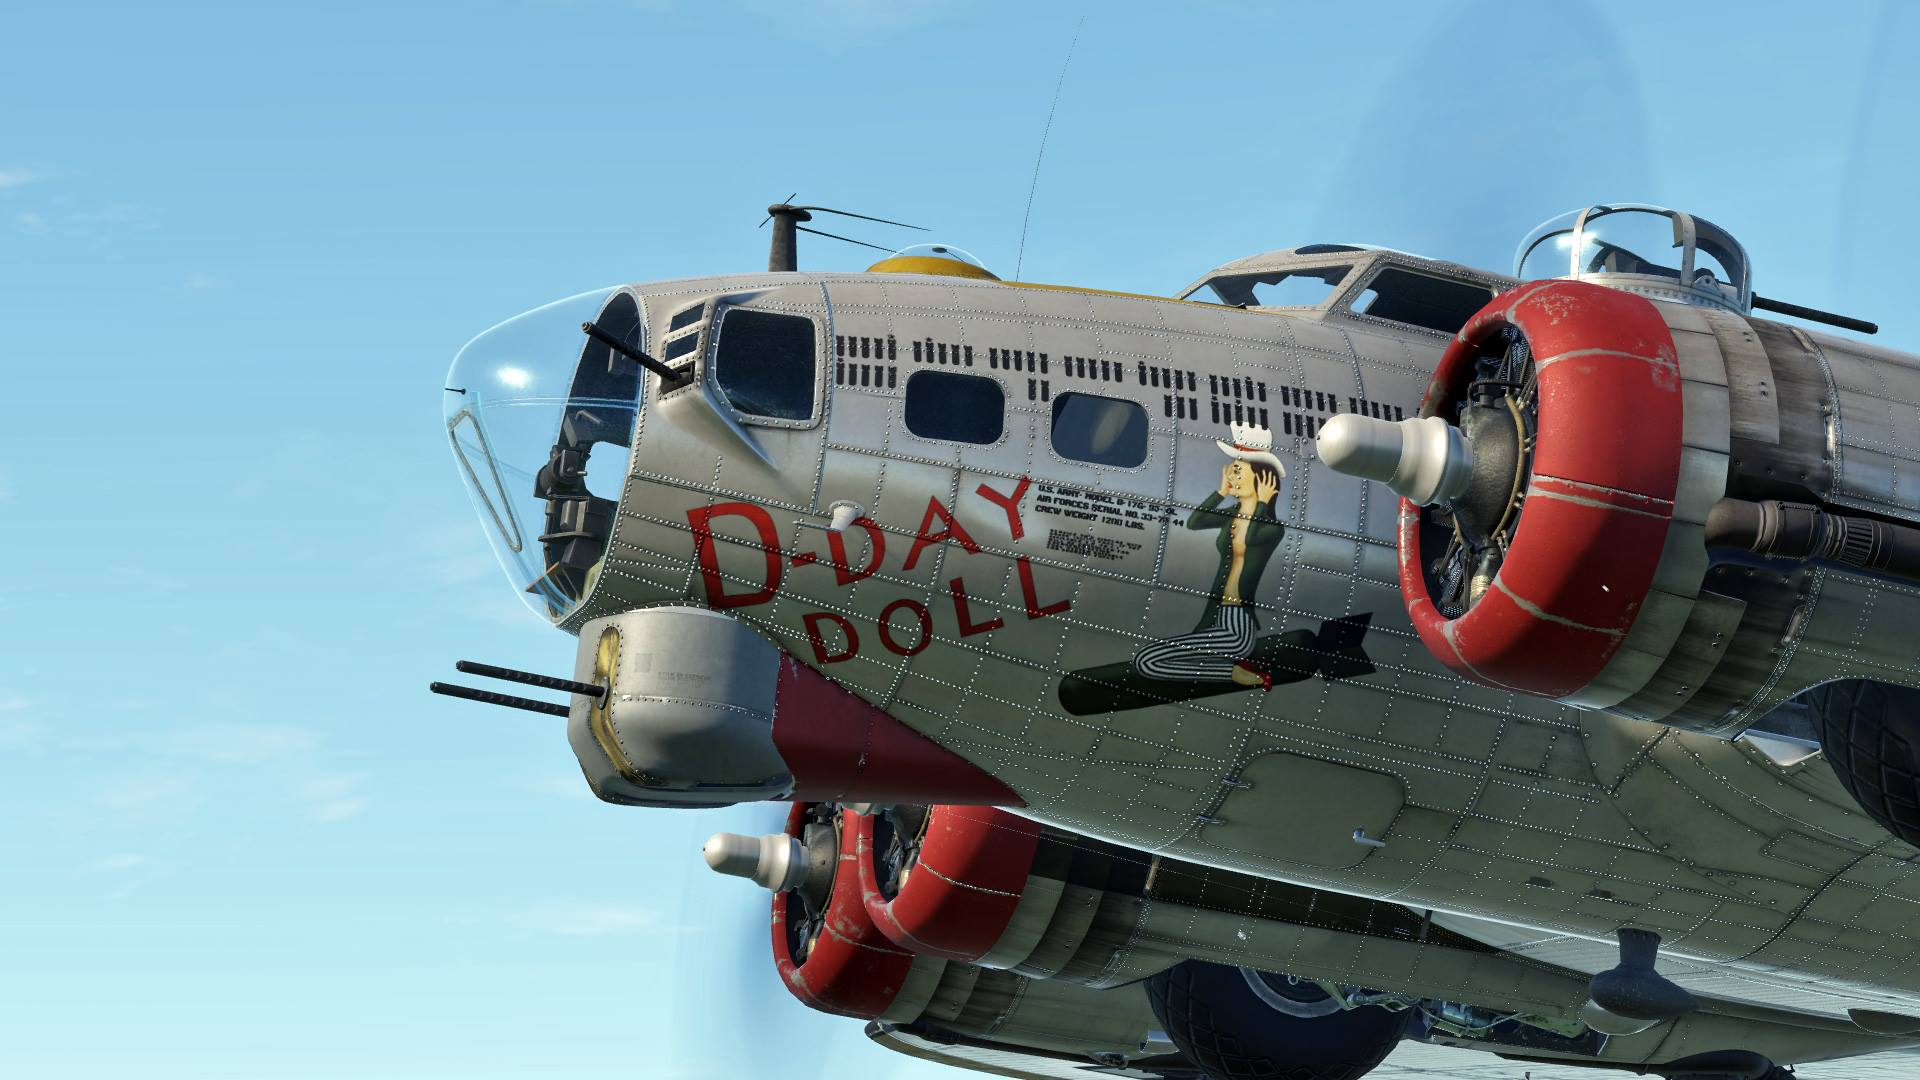 DCS: Normandy 1944 adds 93,000 square kilometers of Europe to fight